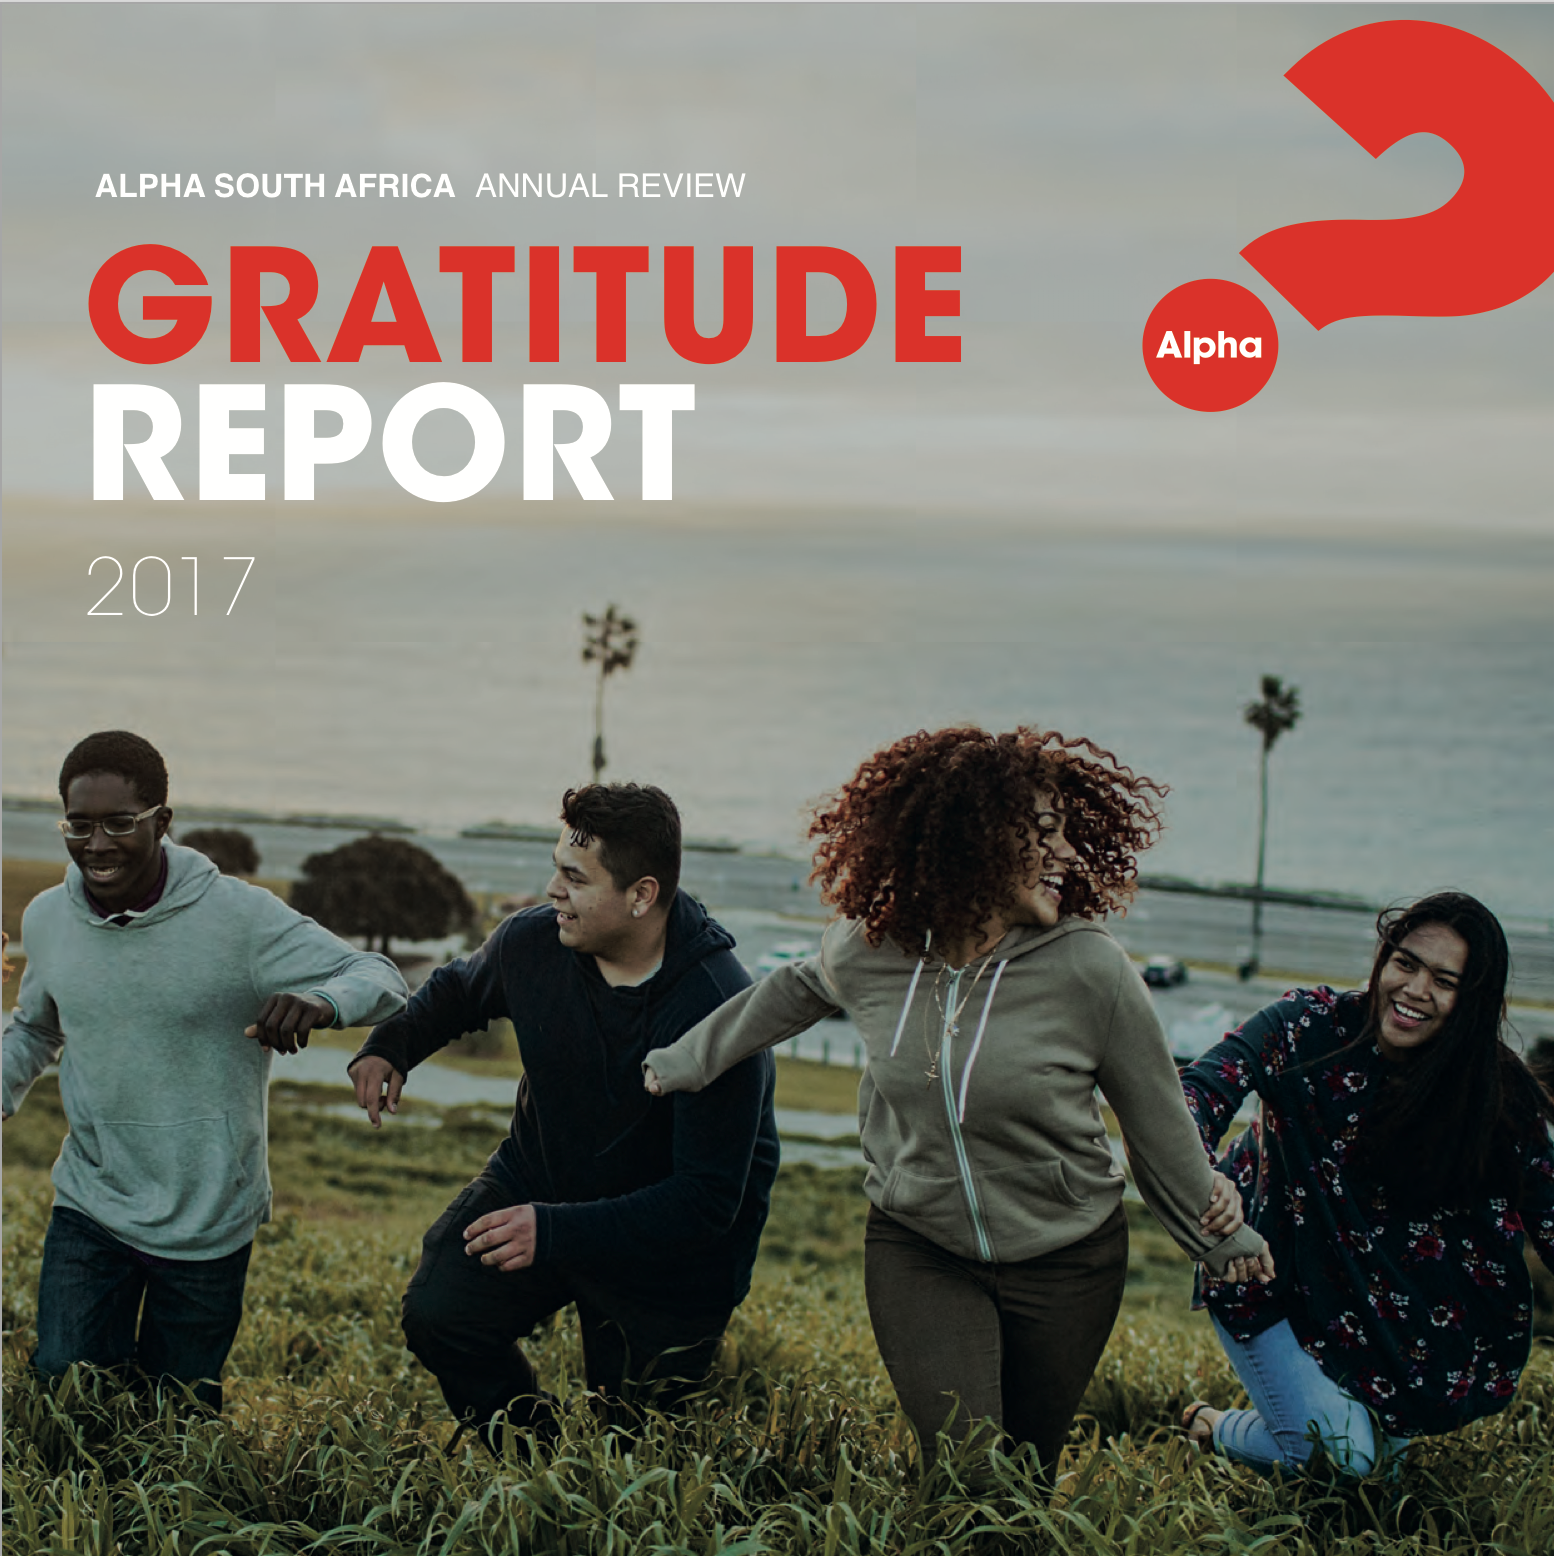 Download your copy of the Gratitude Report today  and read powerful stories of God transforming lives.